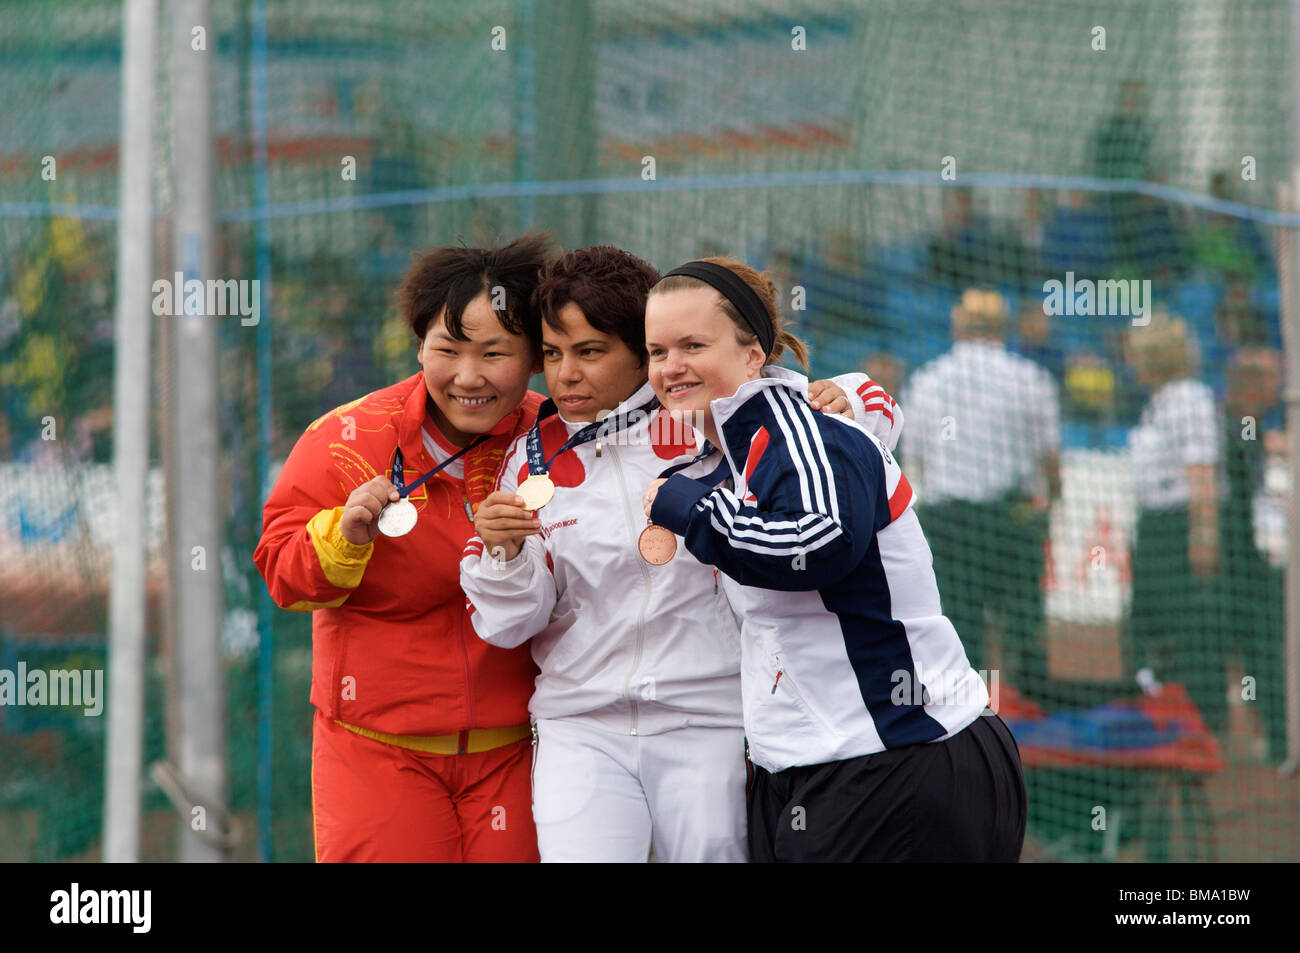 medallists at paralympic world cup manchester 2010 - Stock Image